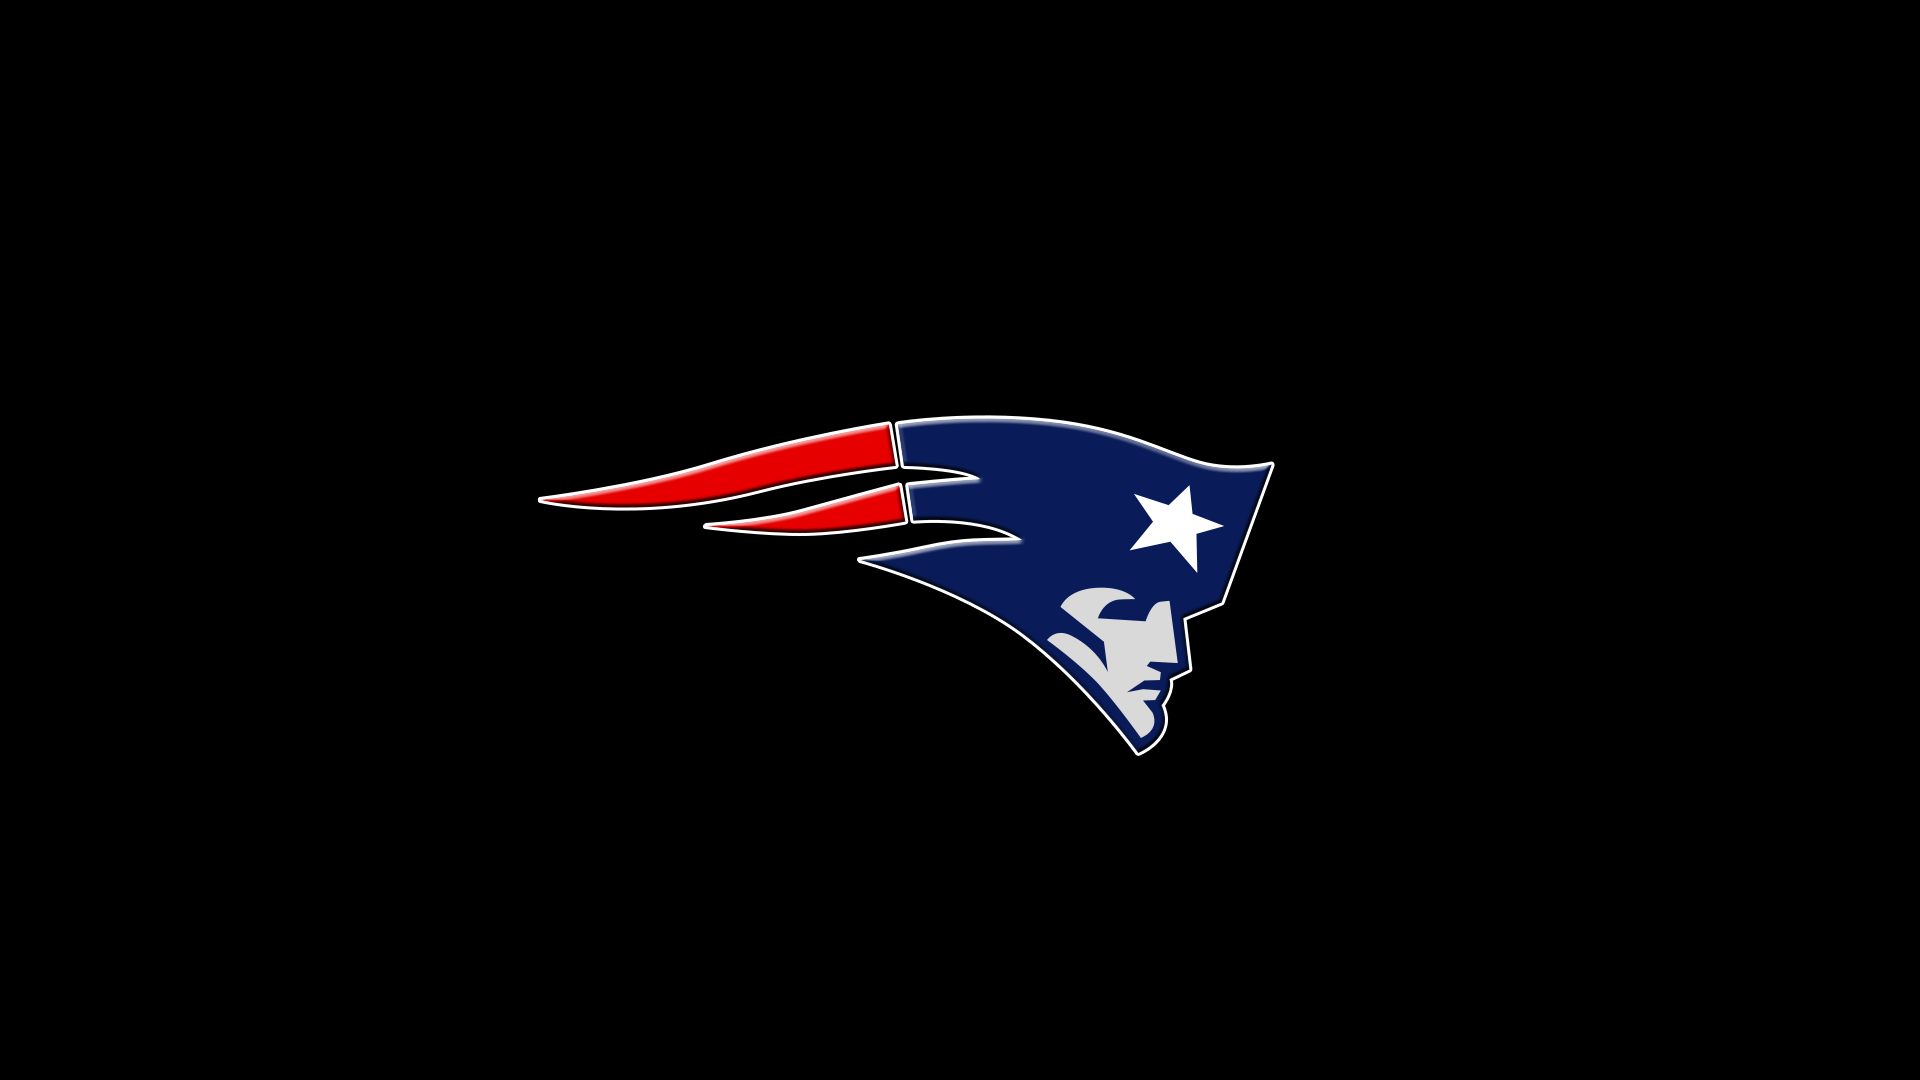 New England Patriots Wallpapers Archives - HDWallSource.com